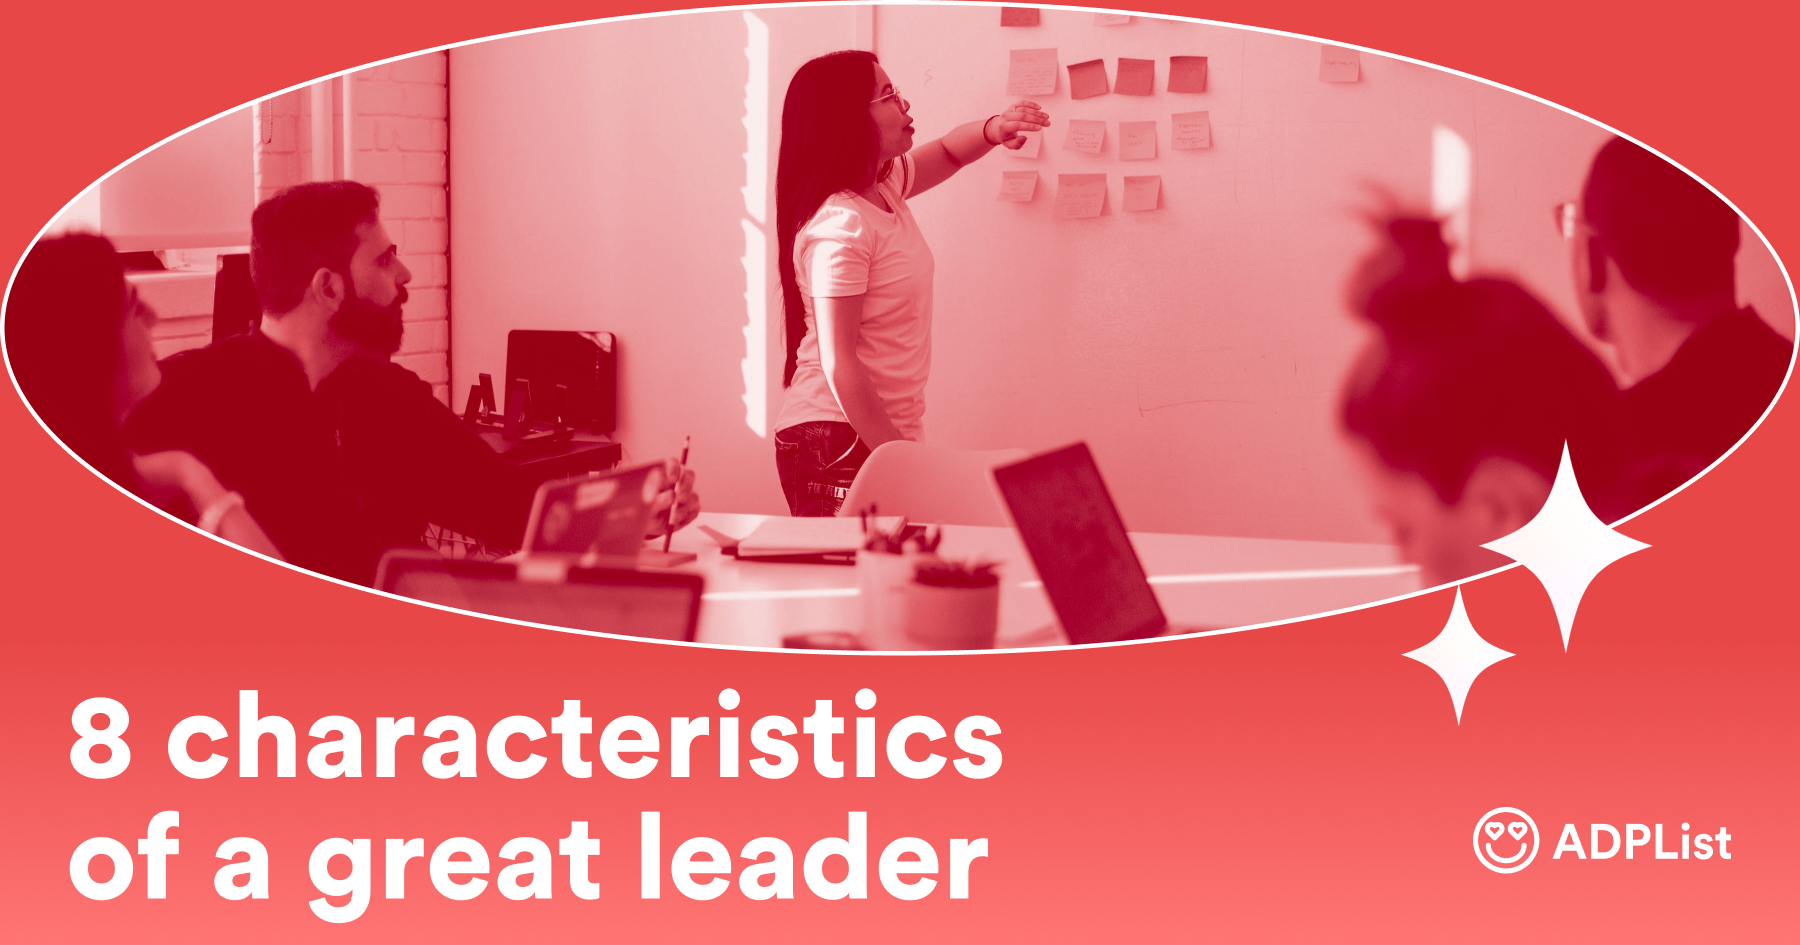 The 8 characteristics of a great leader